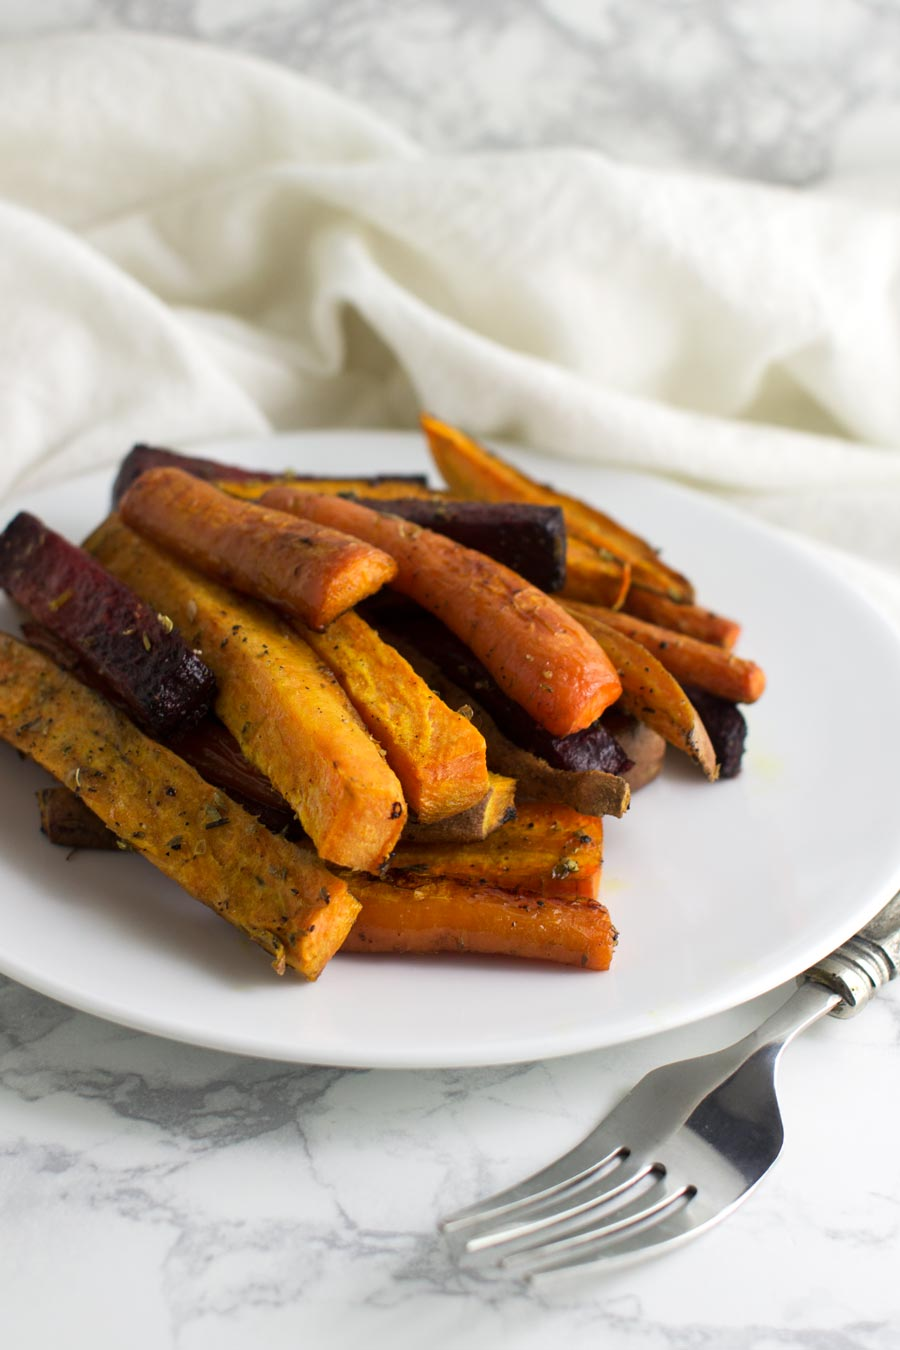 Root Vegetable Fries recipe from acleanplate.com #paleo #aip #glutenfree